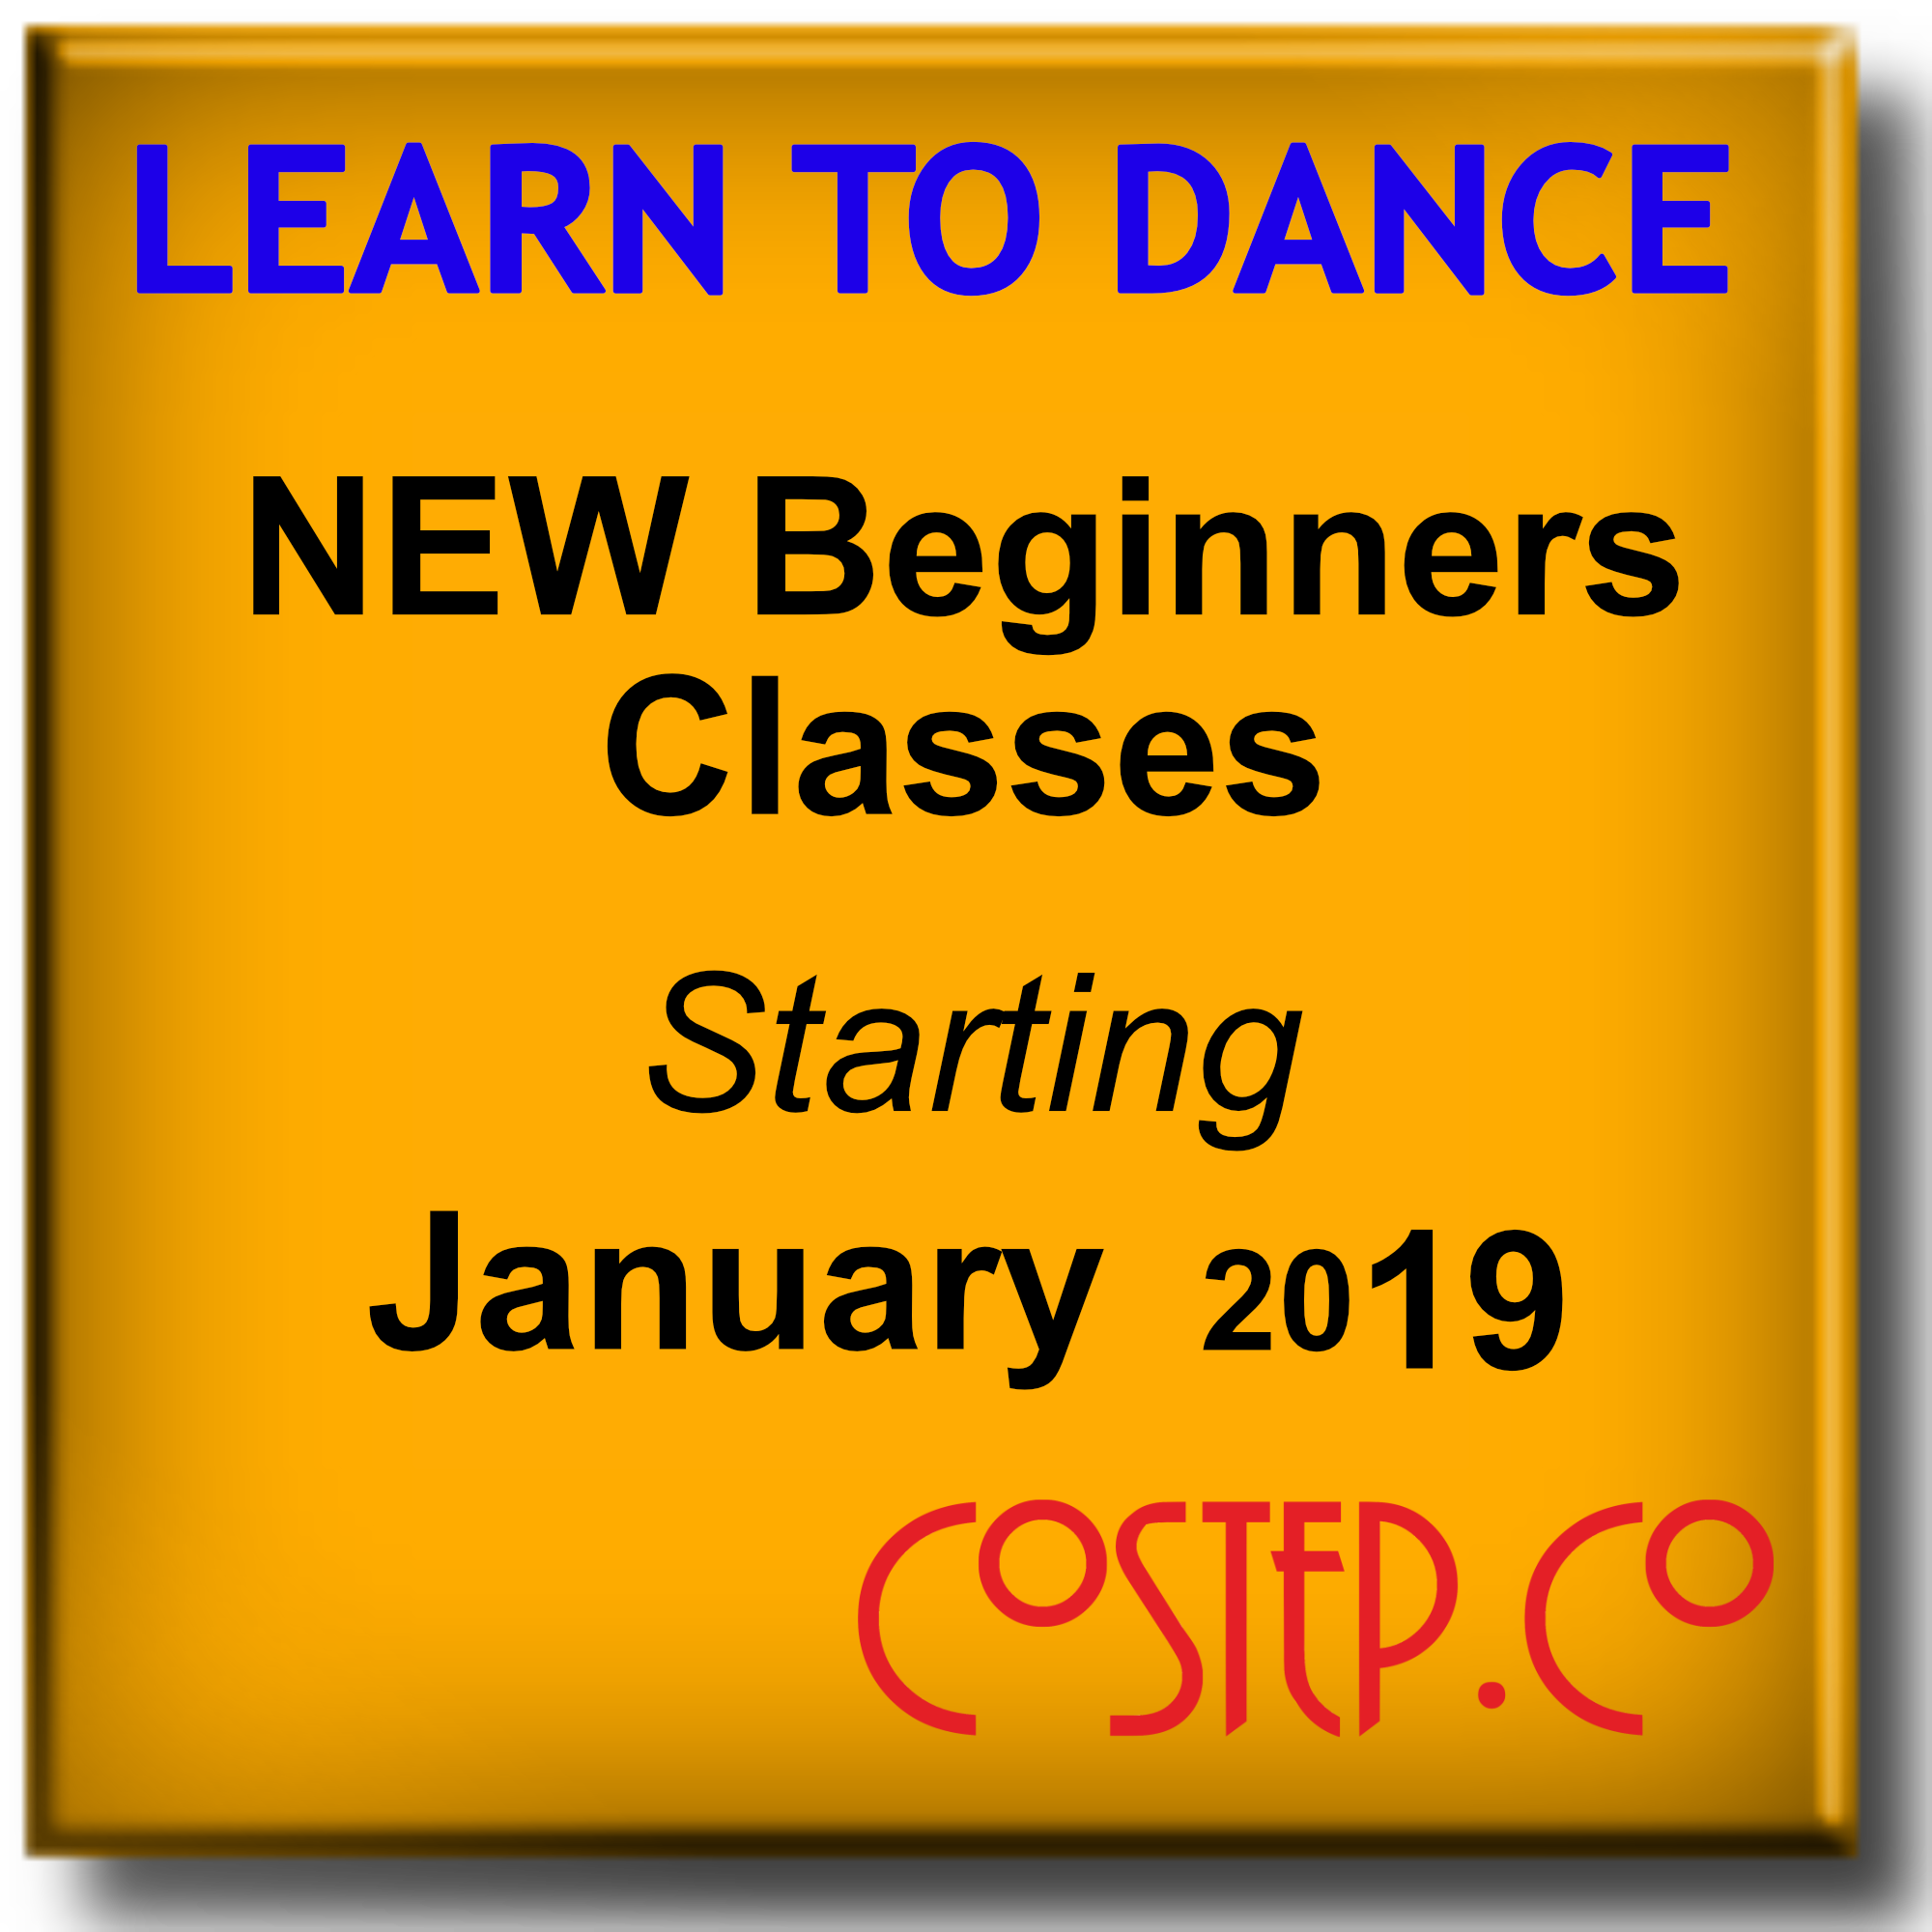 Dance Workshops - CoStep.Co